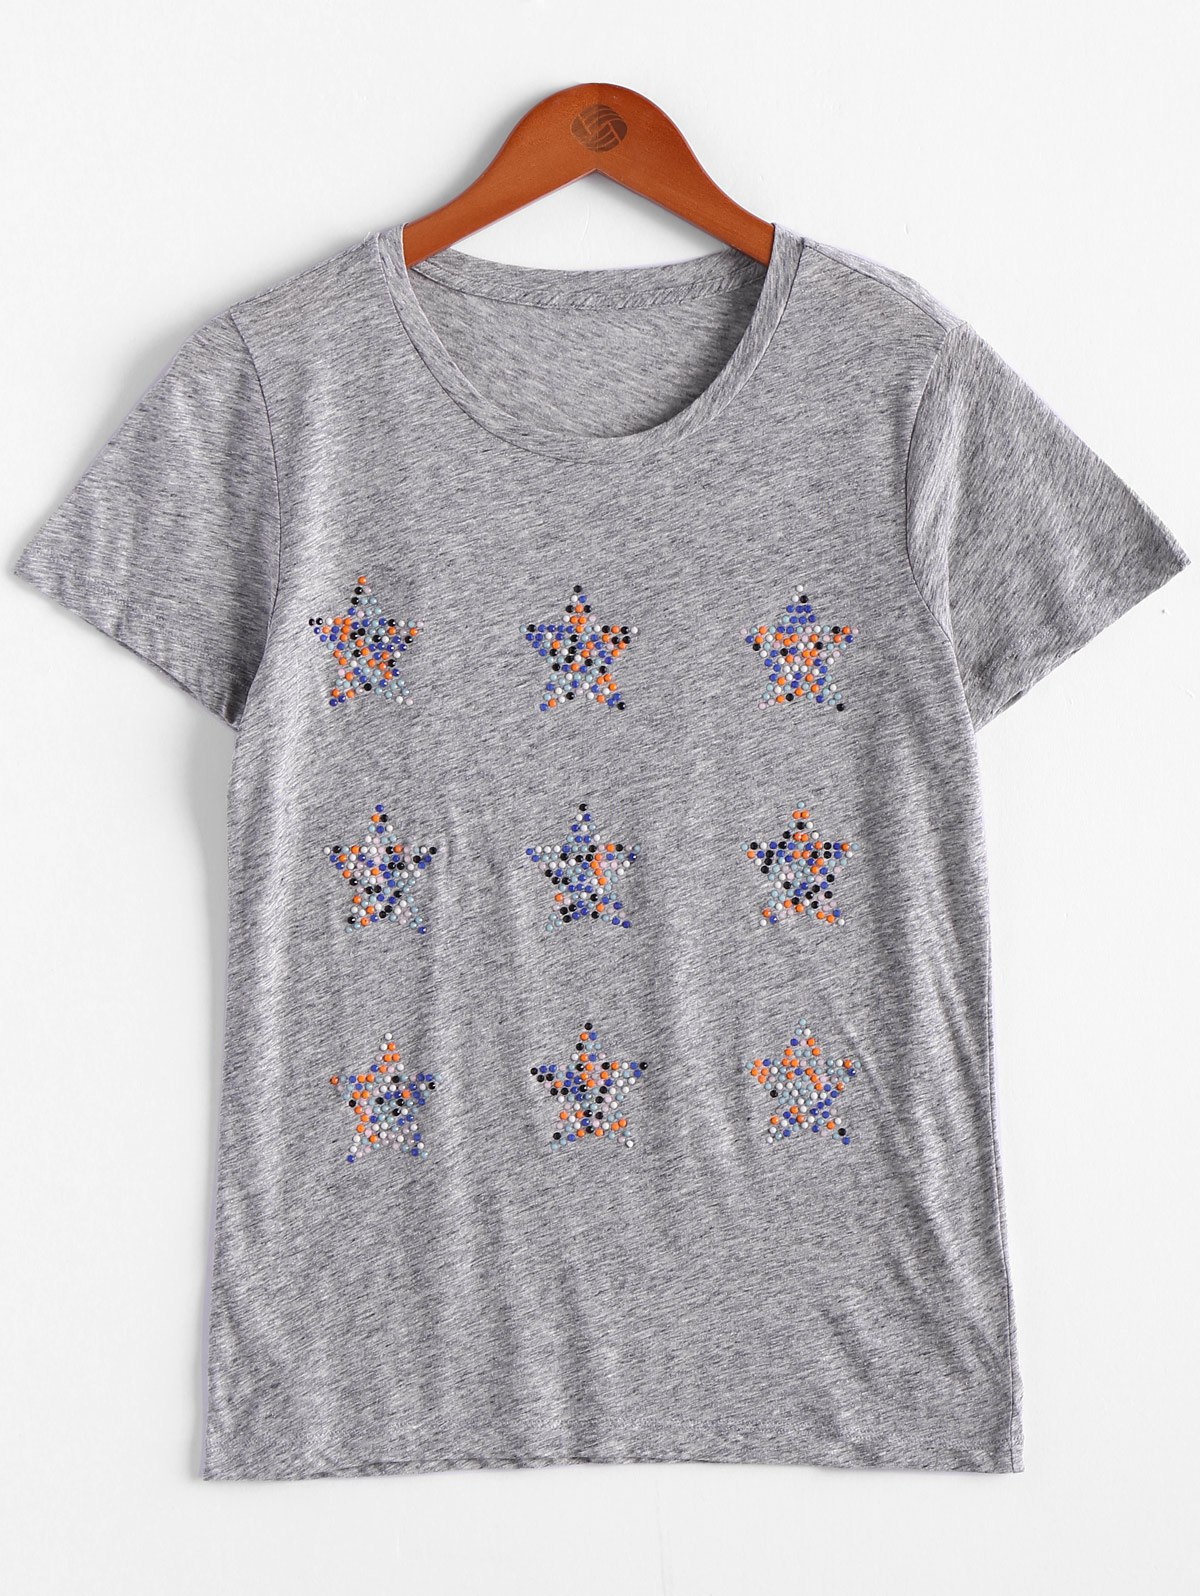 Beaded Embellished Women's Tee - XL GRAY